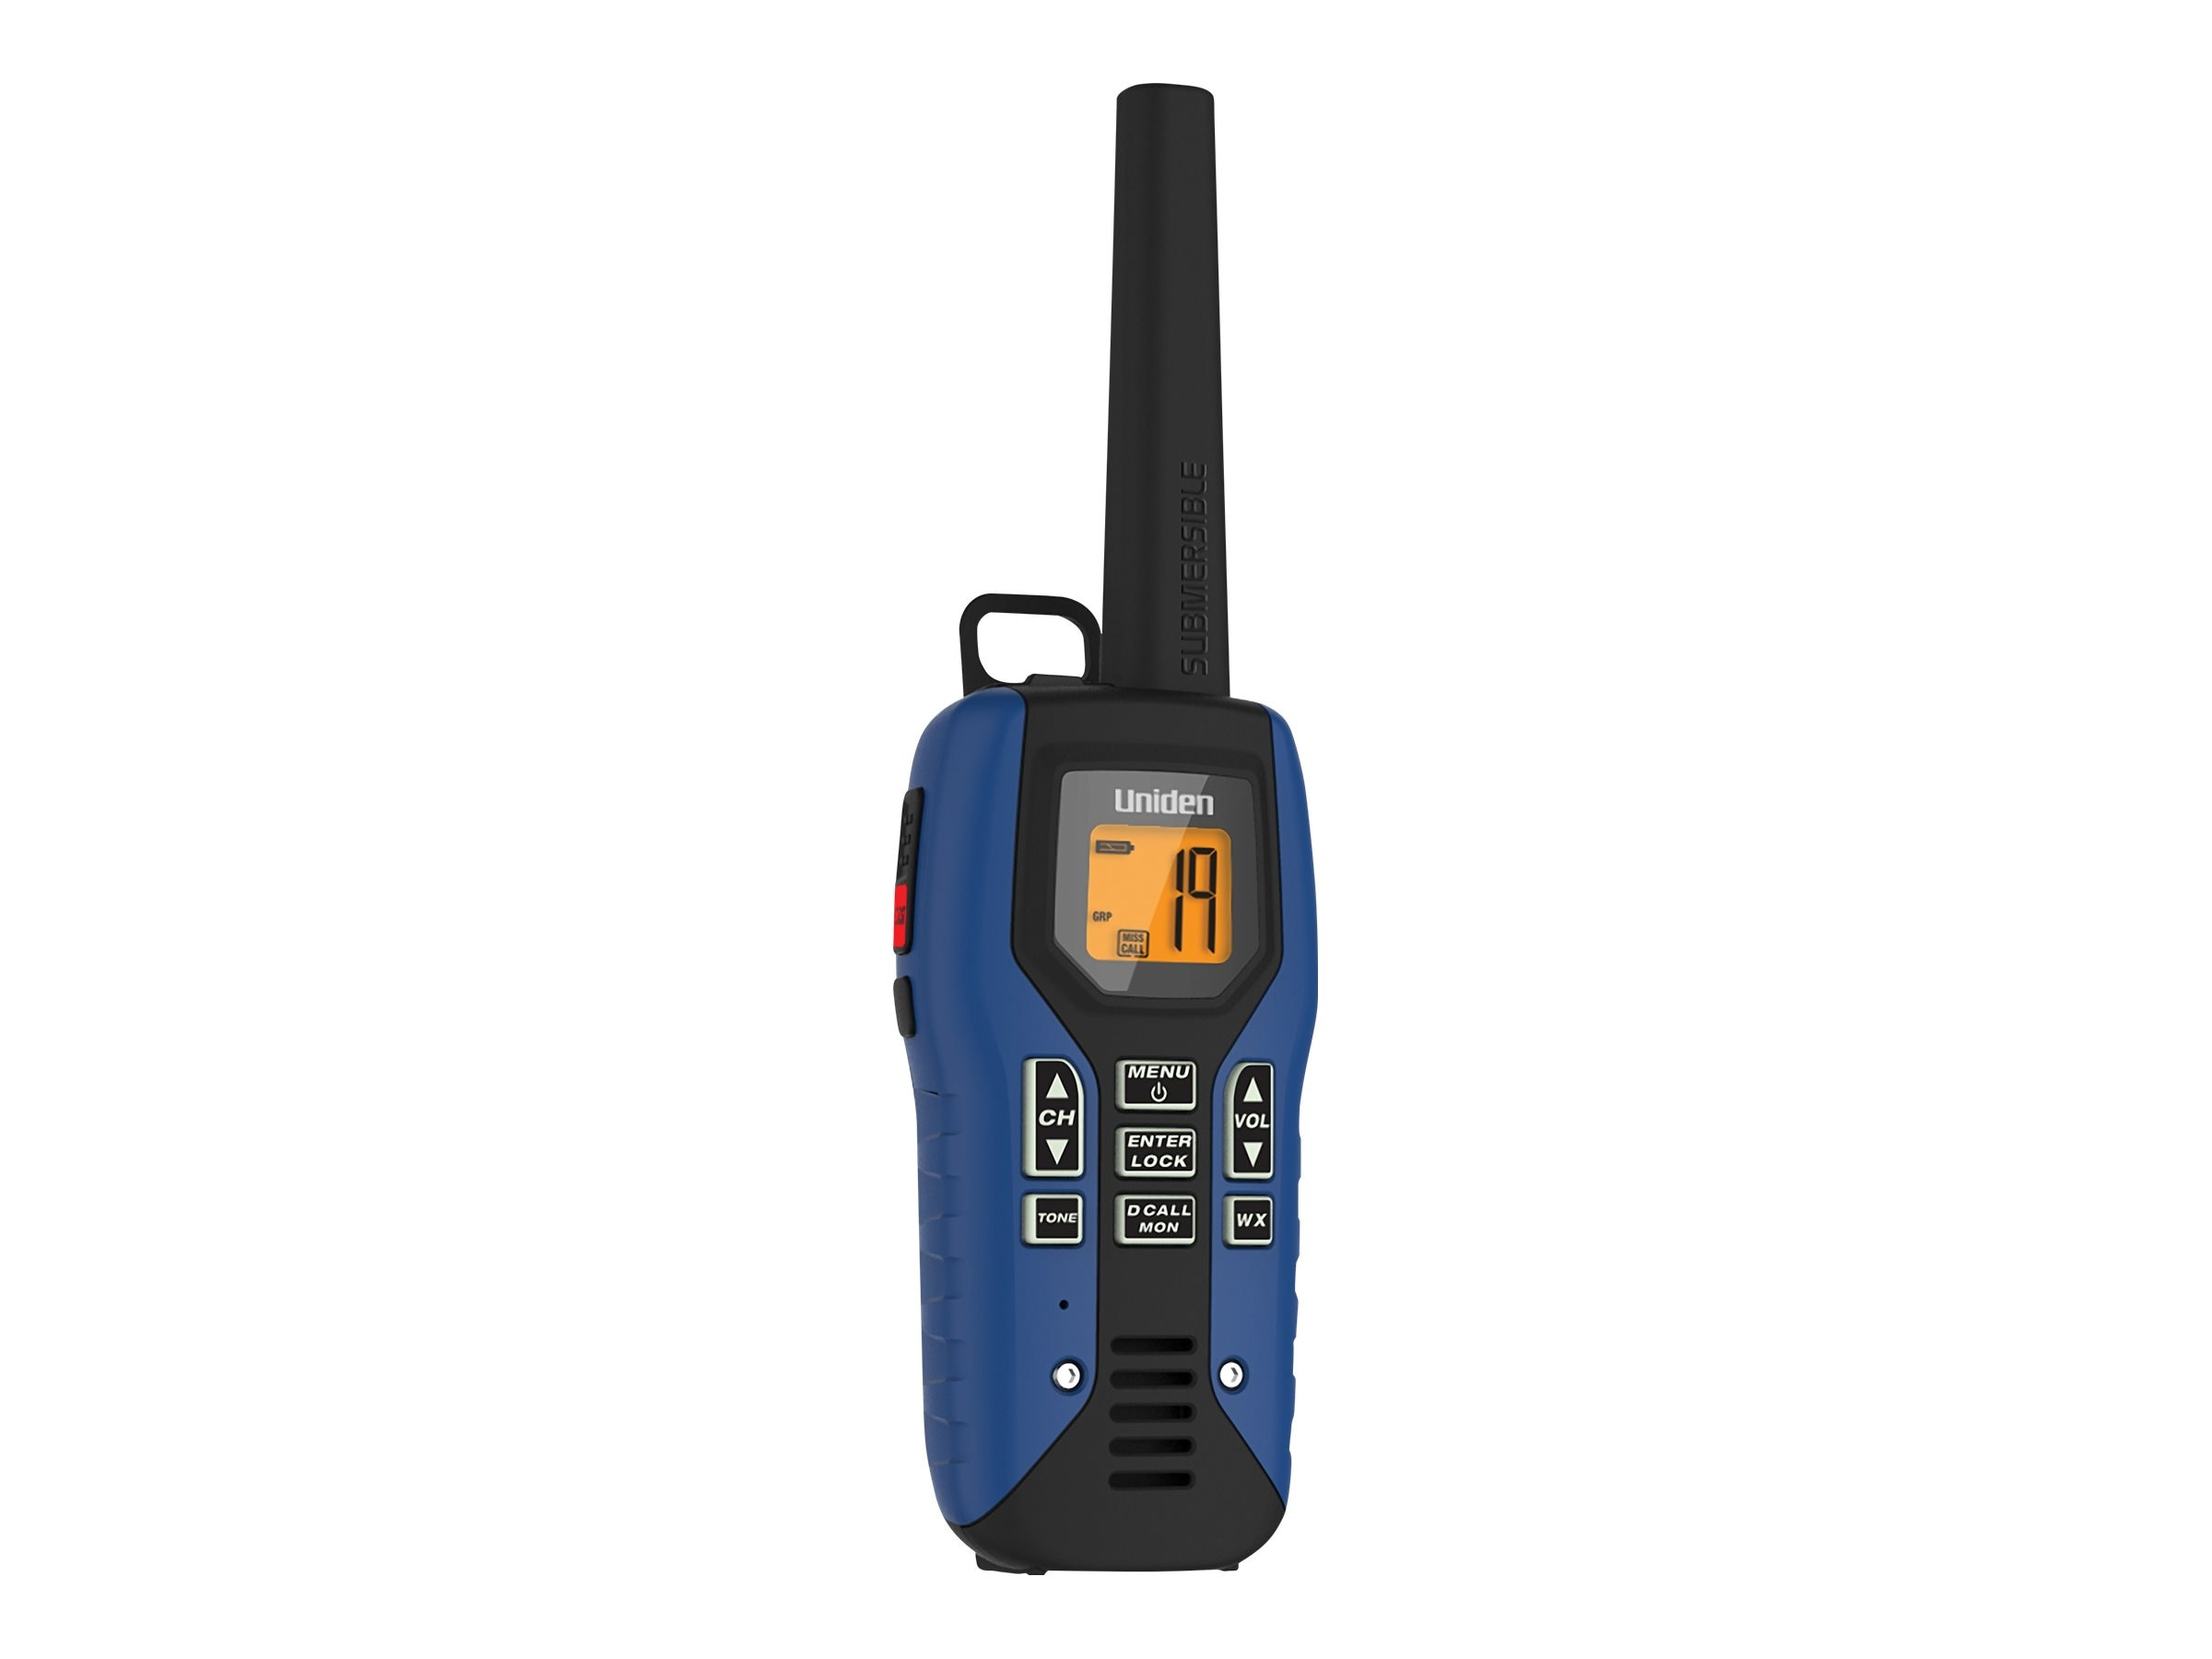 Uniden GMRS FRS 50-Mile Radio w  Privacy Codes, Weather Alerts & Headsets, GMR5095-2CKHS, 31643519, Two-Way Radios